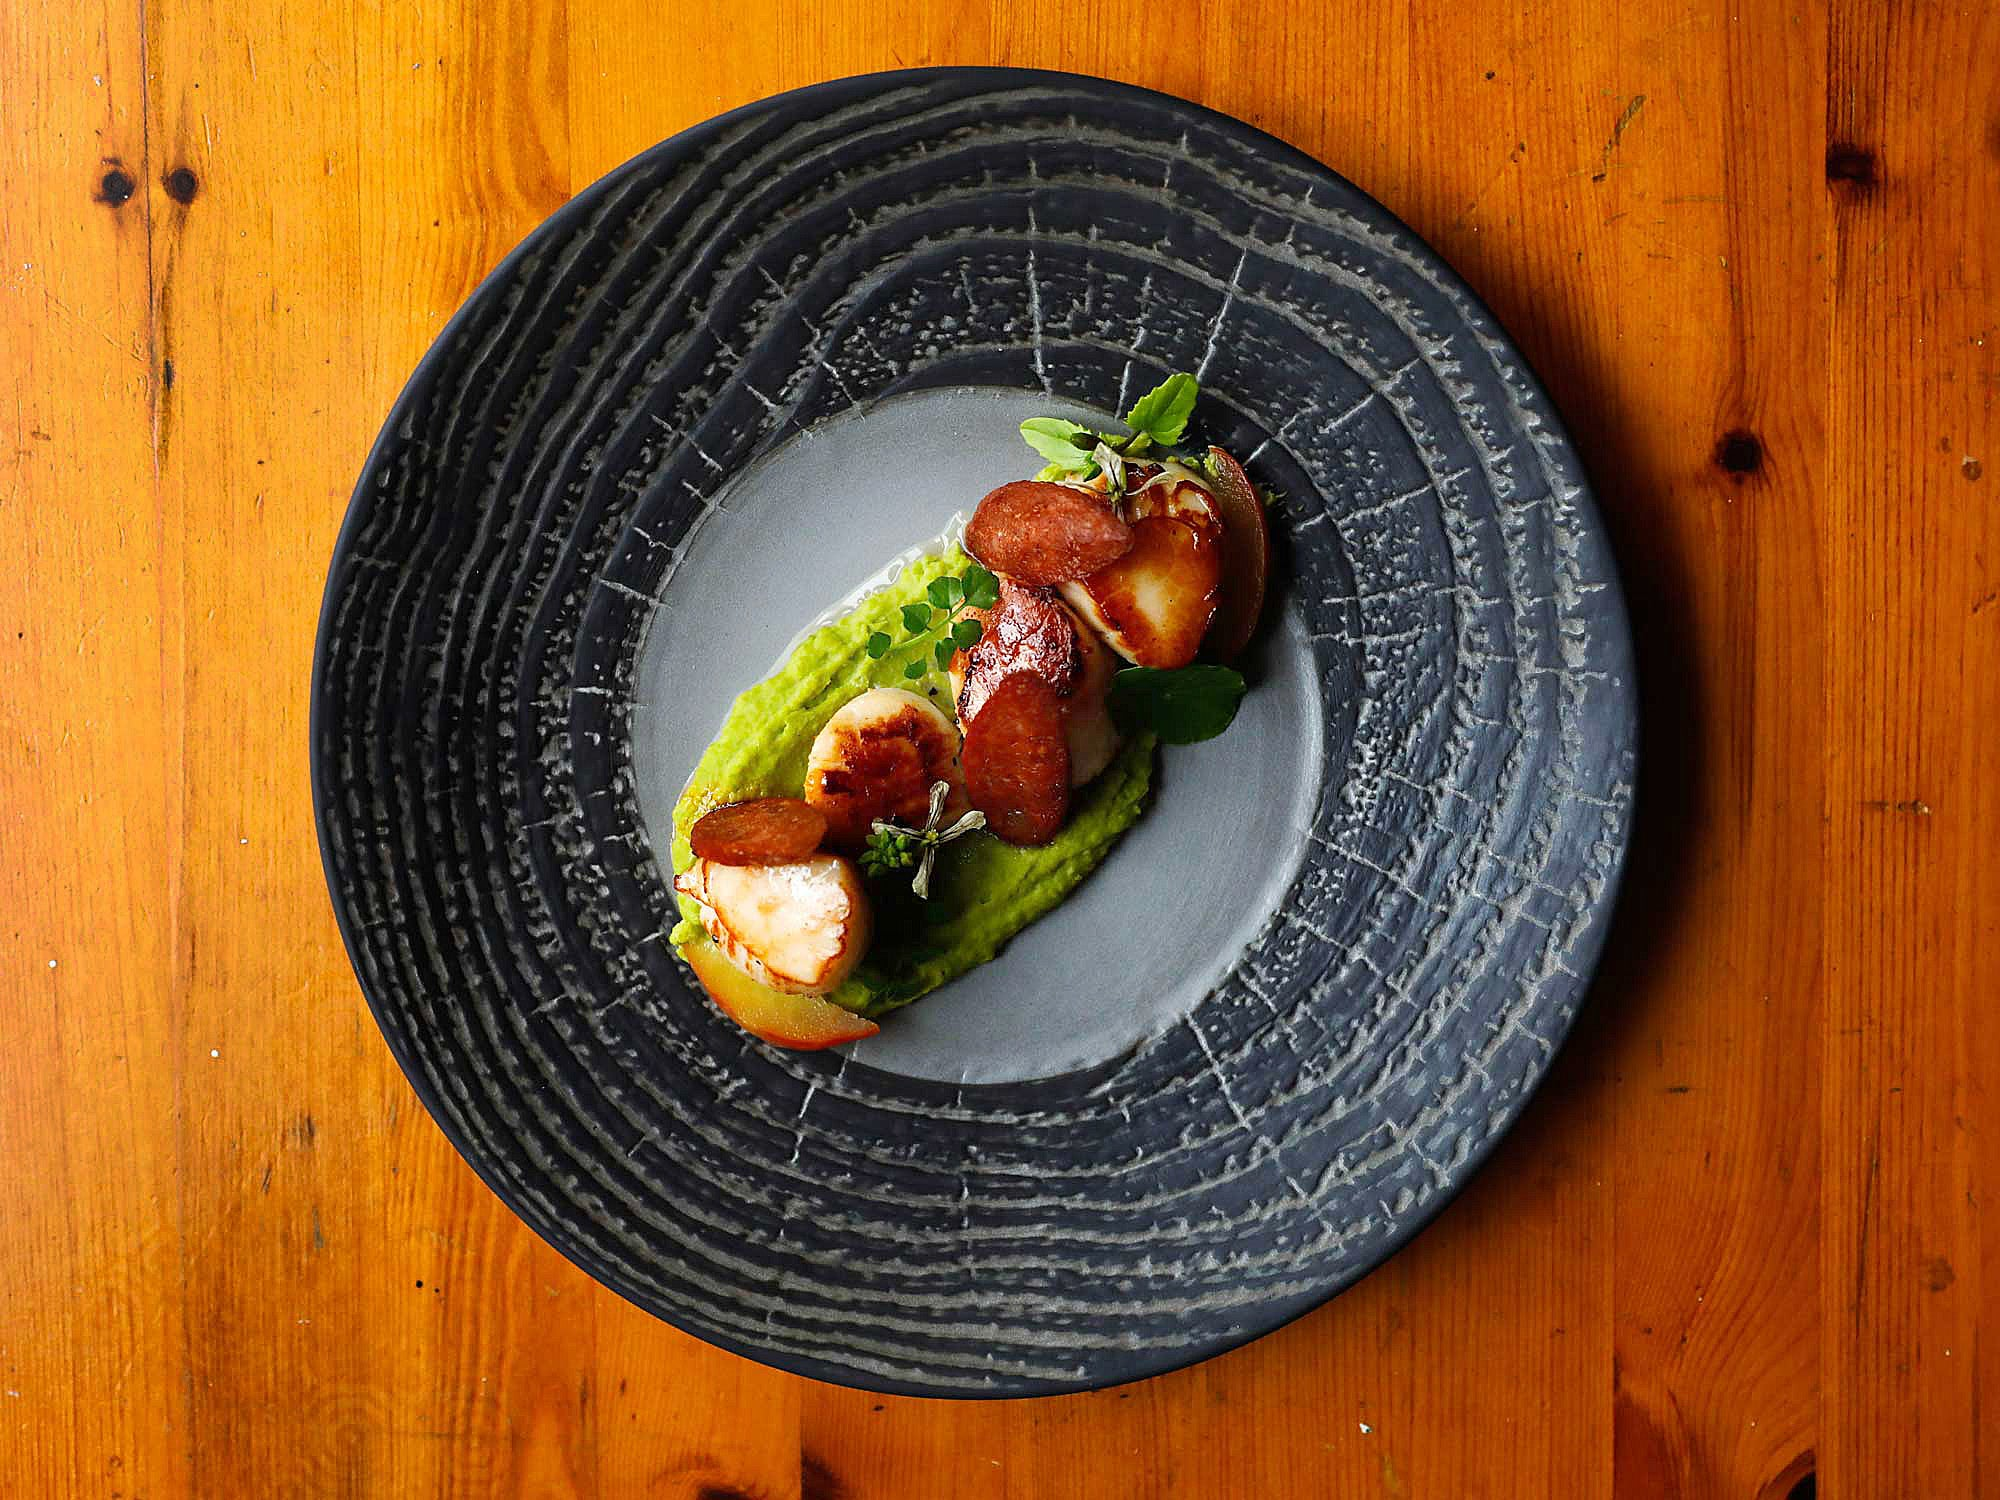 Seared Bay Scallops with Pea Purée and Radishes